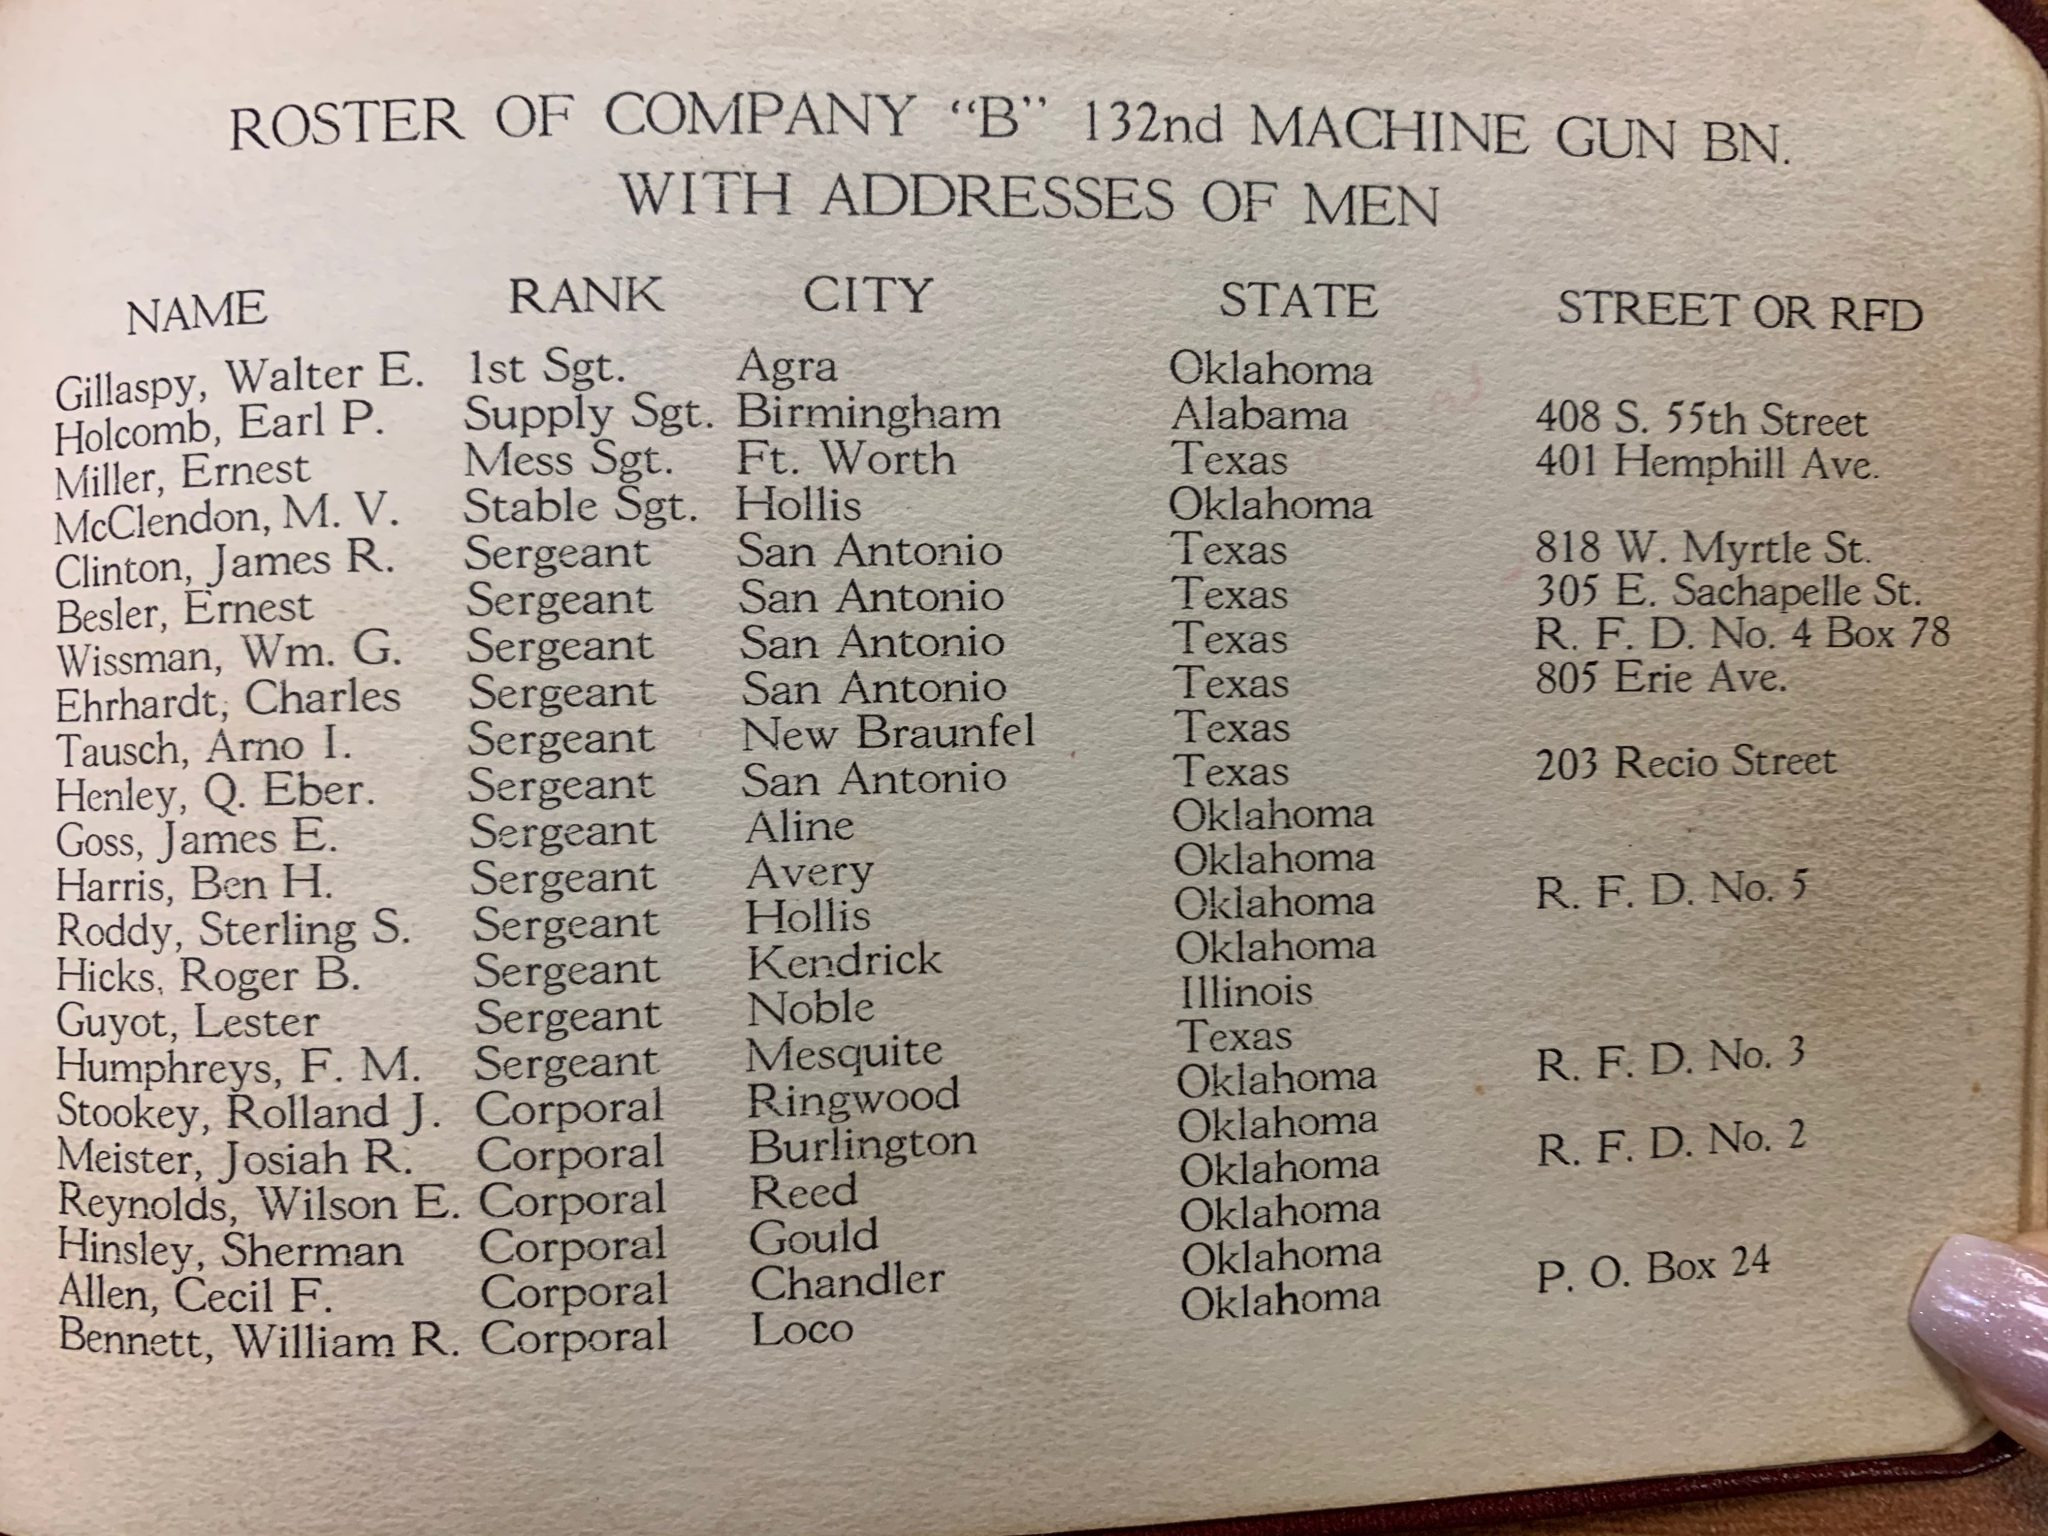 Roster of Company B 132nd Machine Gun Battalion